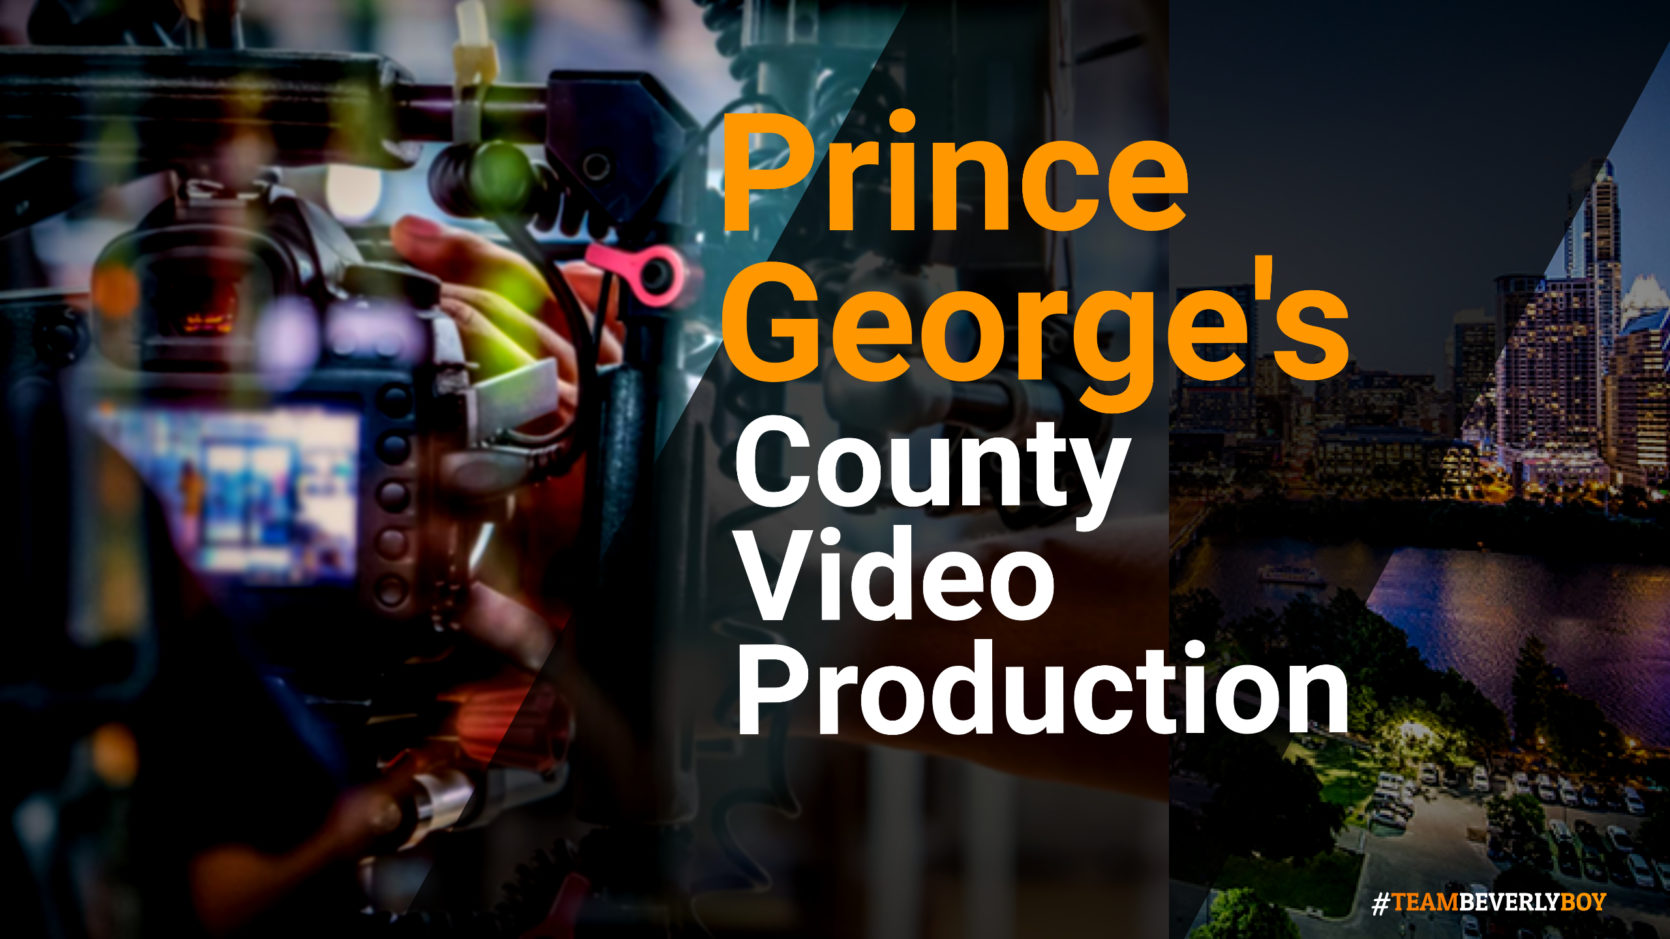 Prince George's County video production